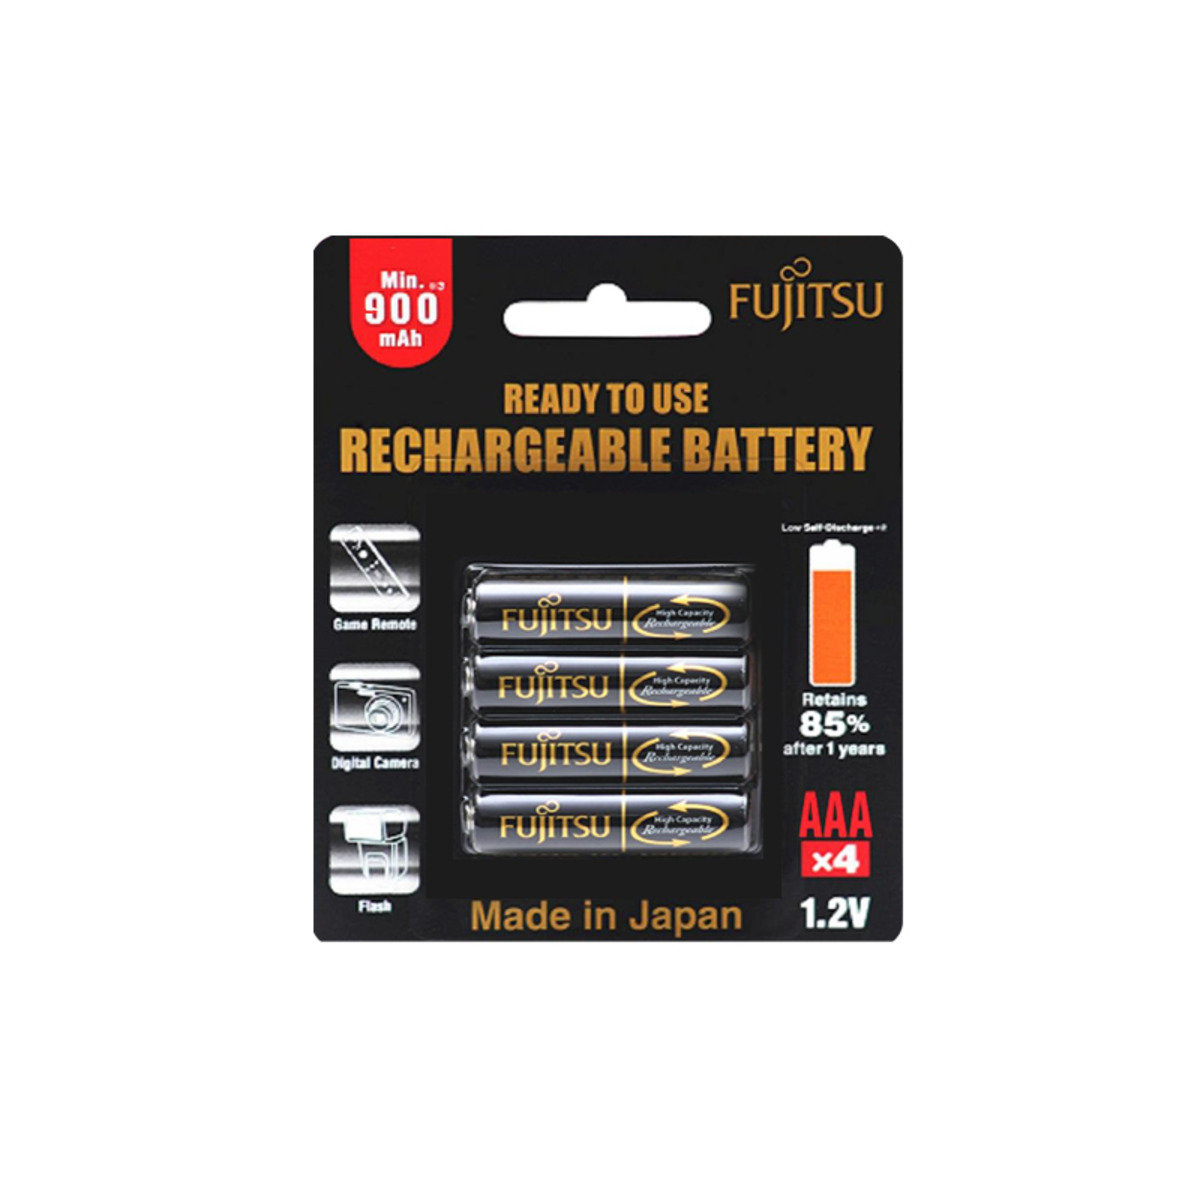 900mAh AAA x 4 (made in Japan) Ni-HM rechargeable battery